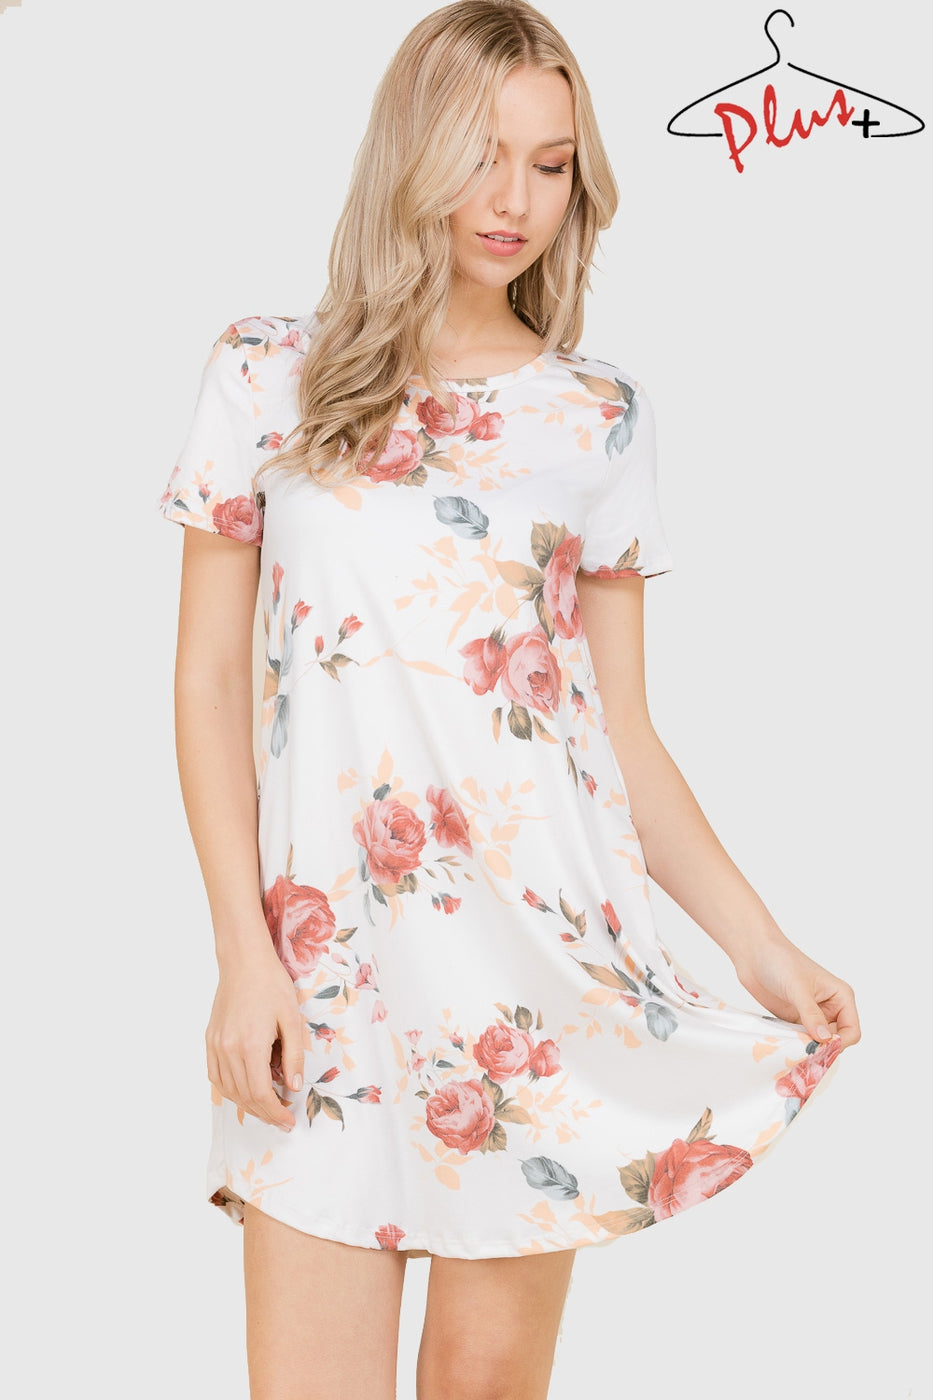 Short Sleeve Ivory Floral Tunic Dress with Pockets - Curvy